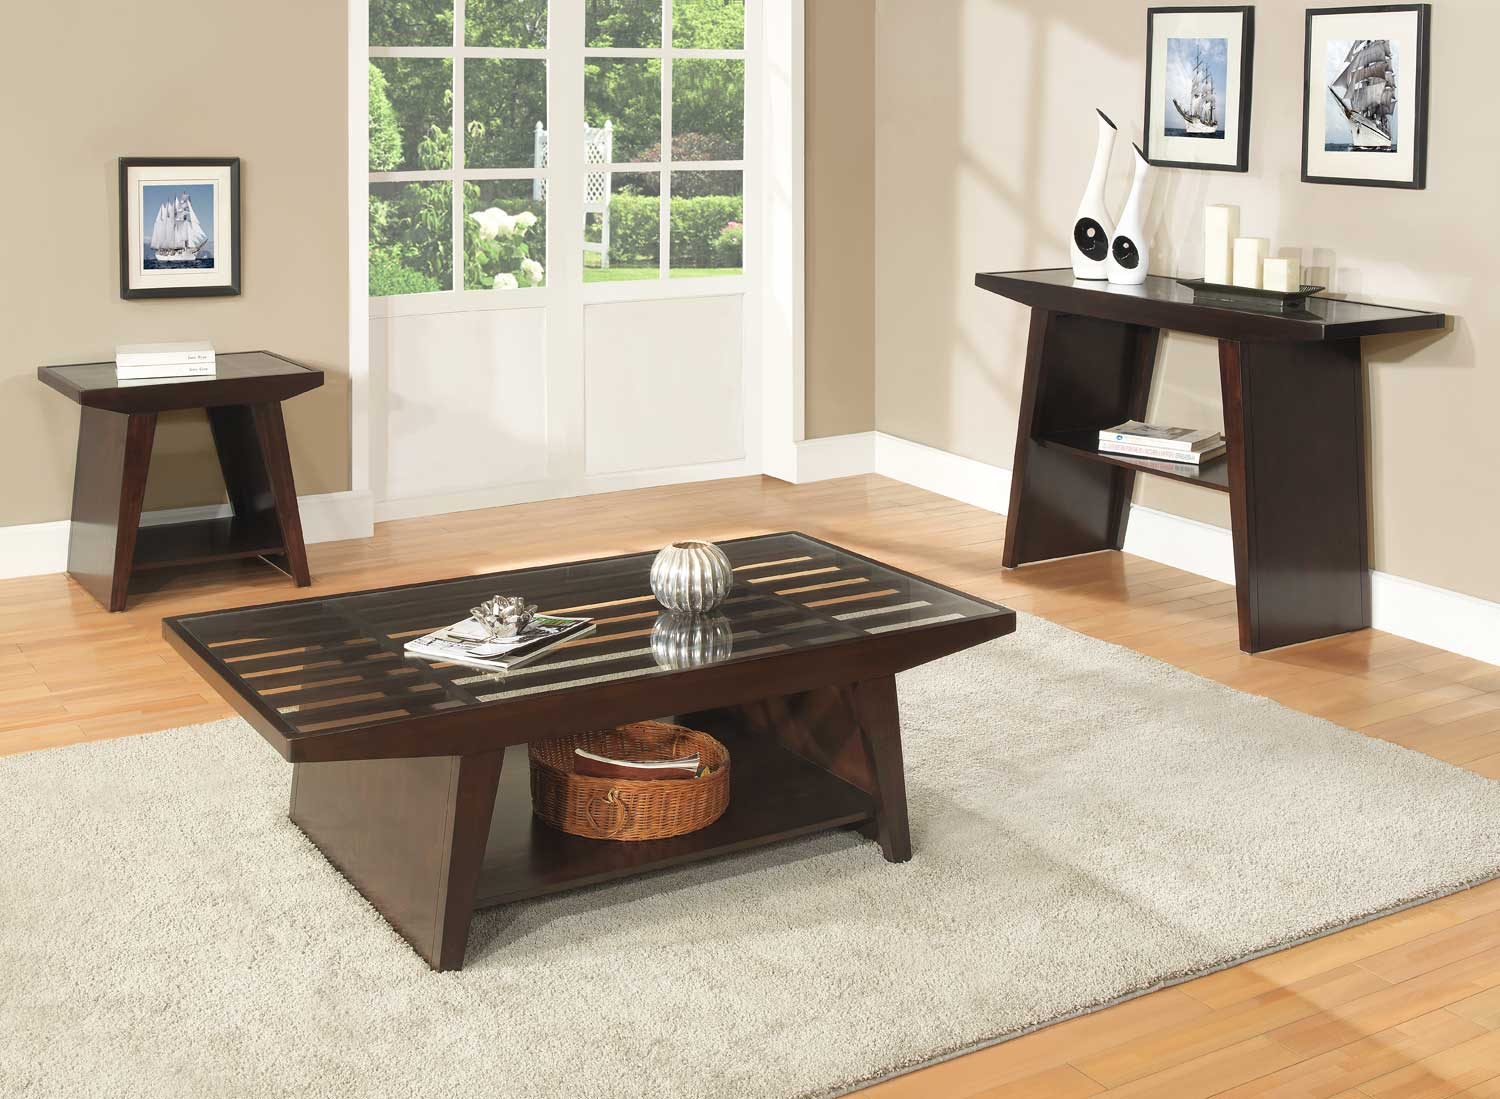 virtuemart_product_he-3427-30-coffee-table-set